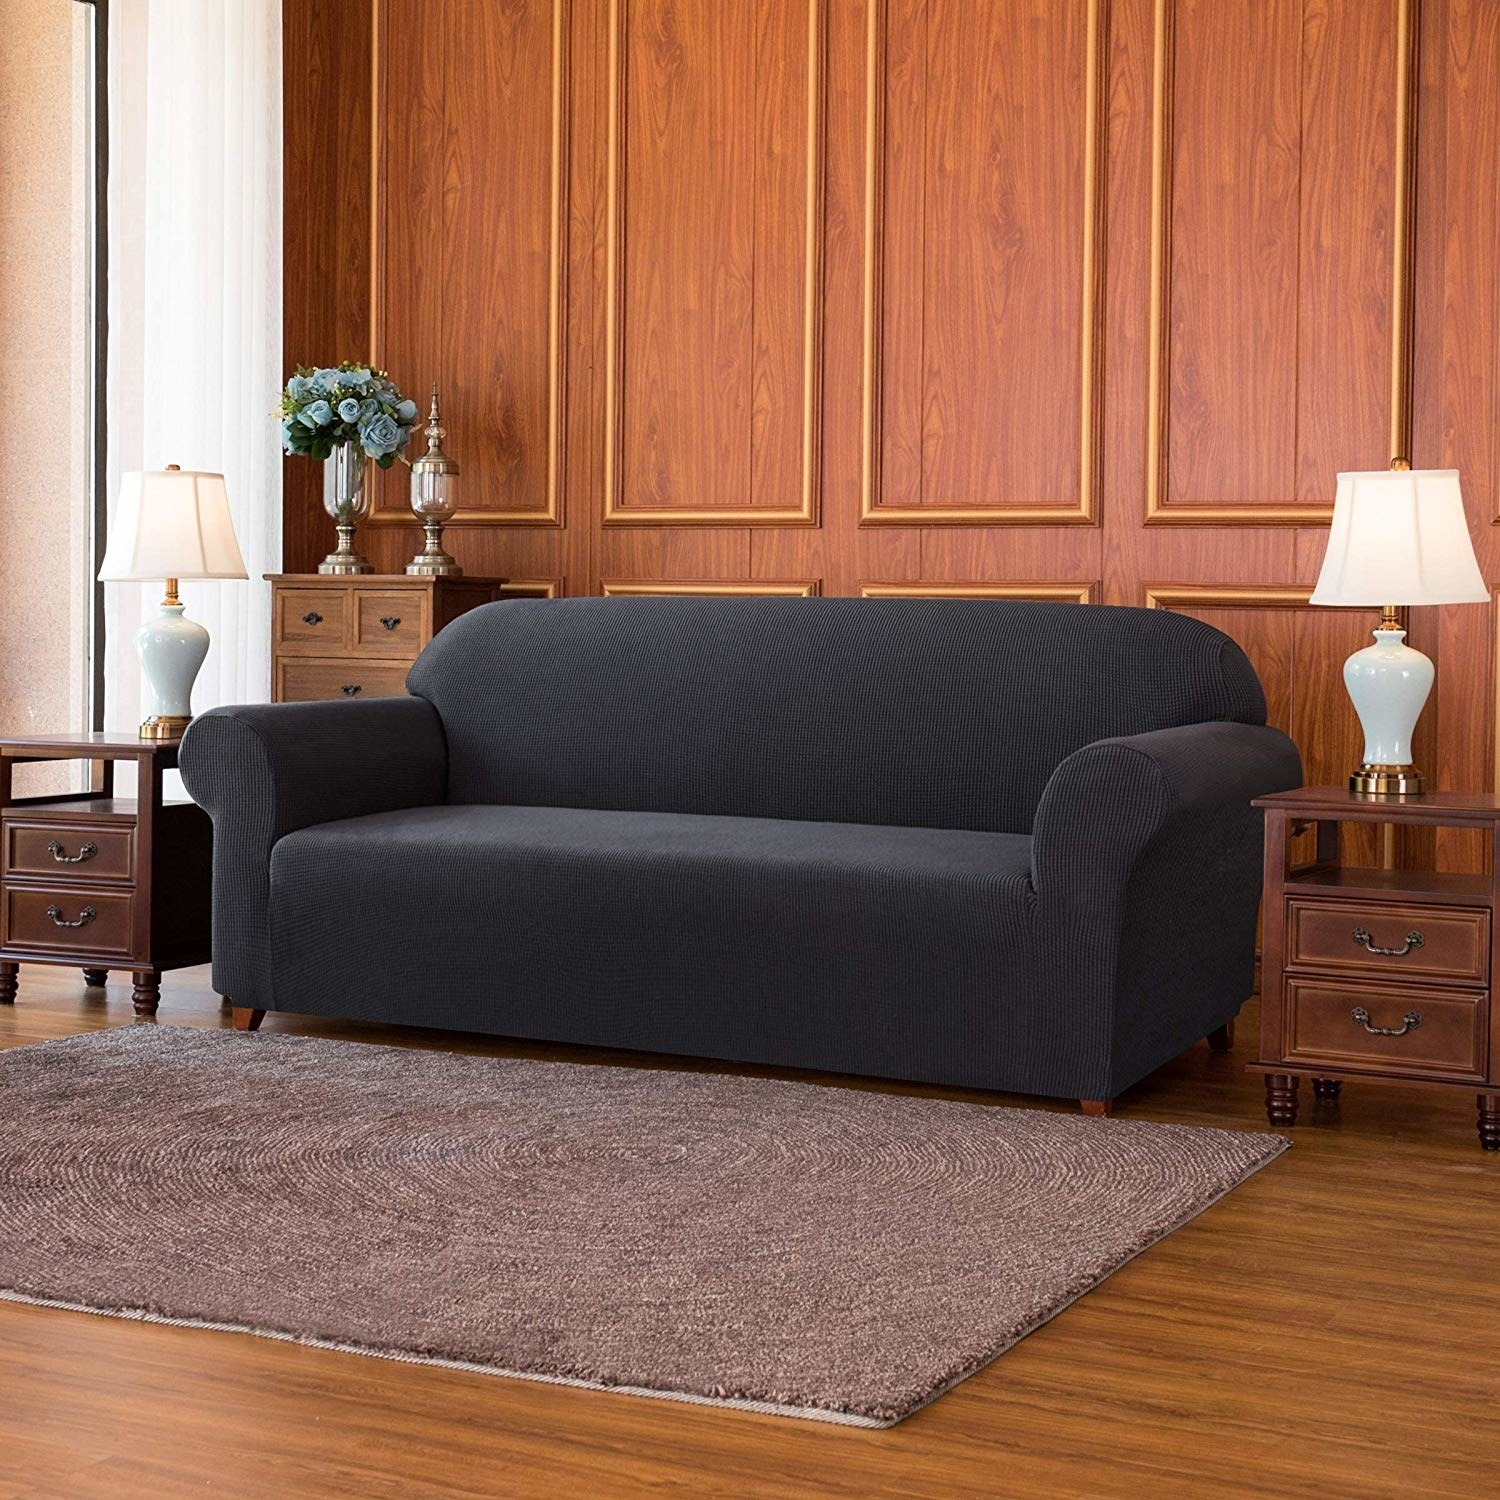 dark dray slipcover over a couch that's sitting in a wood-paneled room